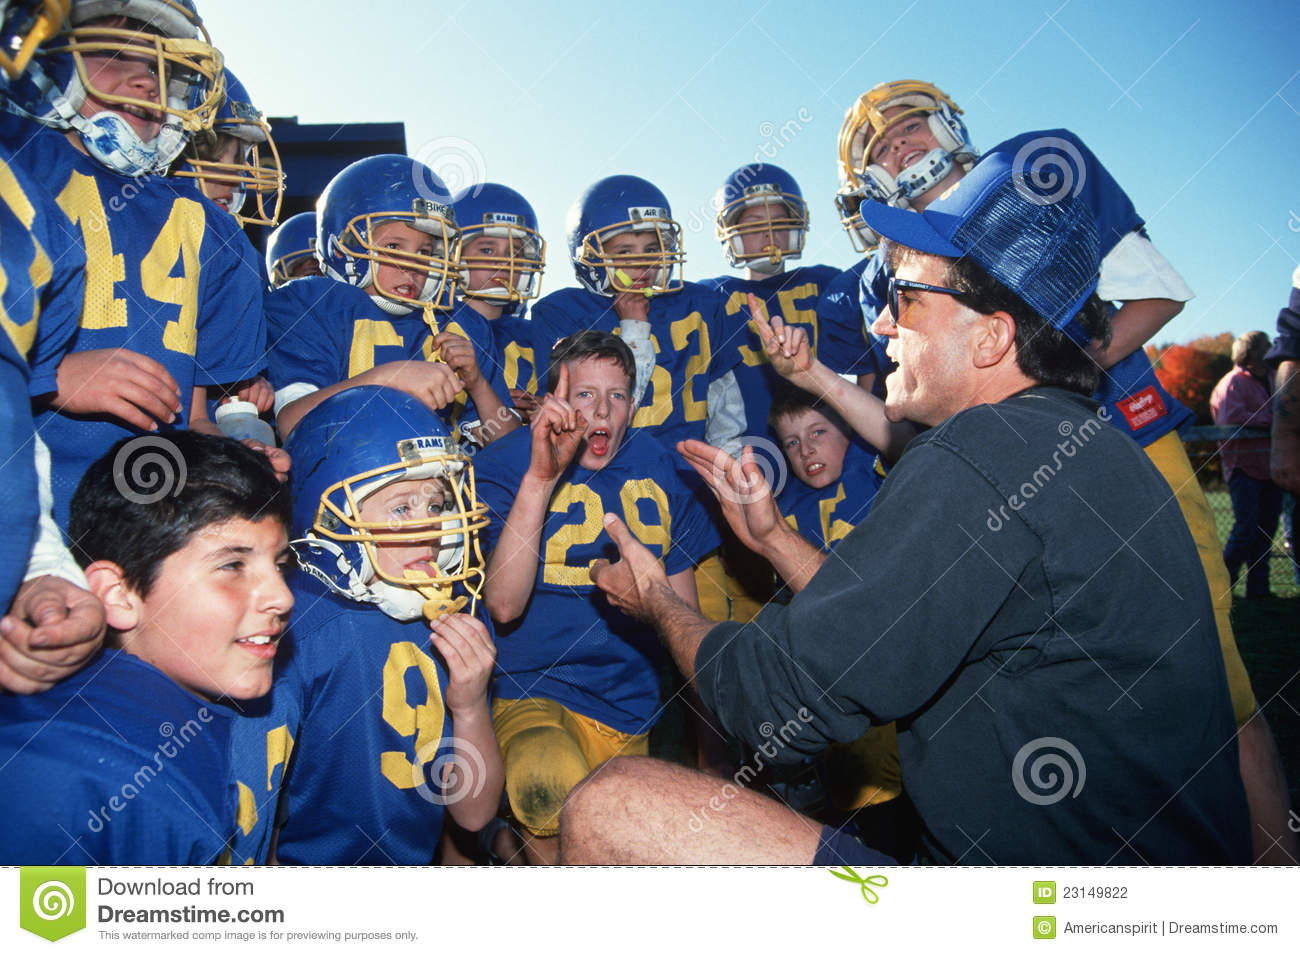 Coach giving youth football team a pep talk in Connecticut Youth Football Coach